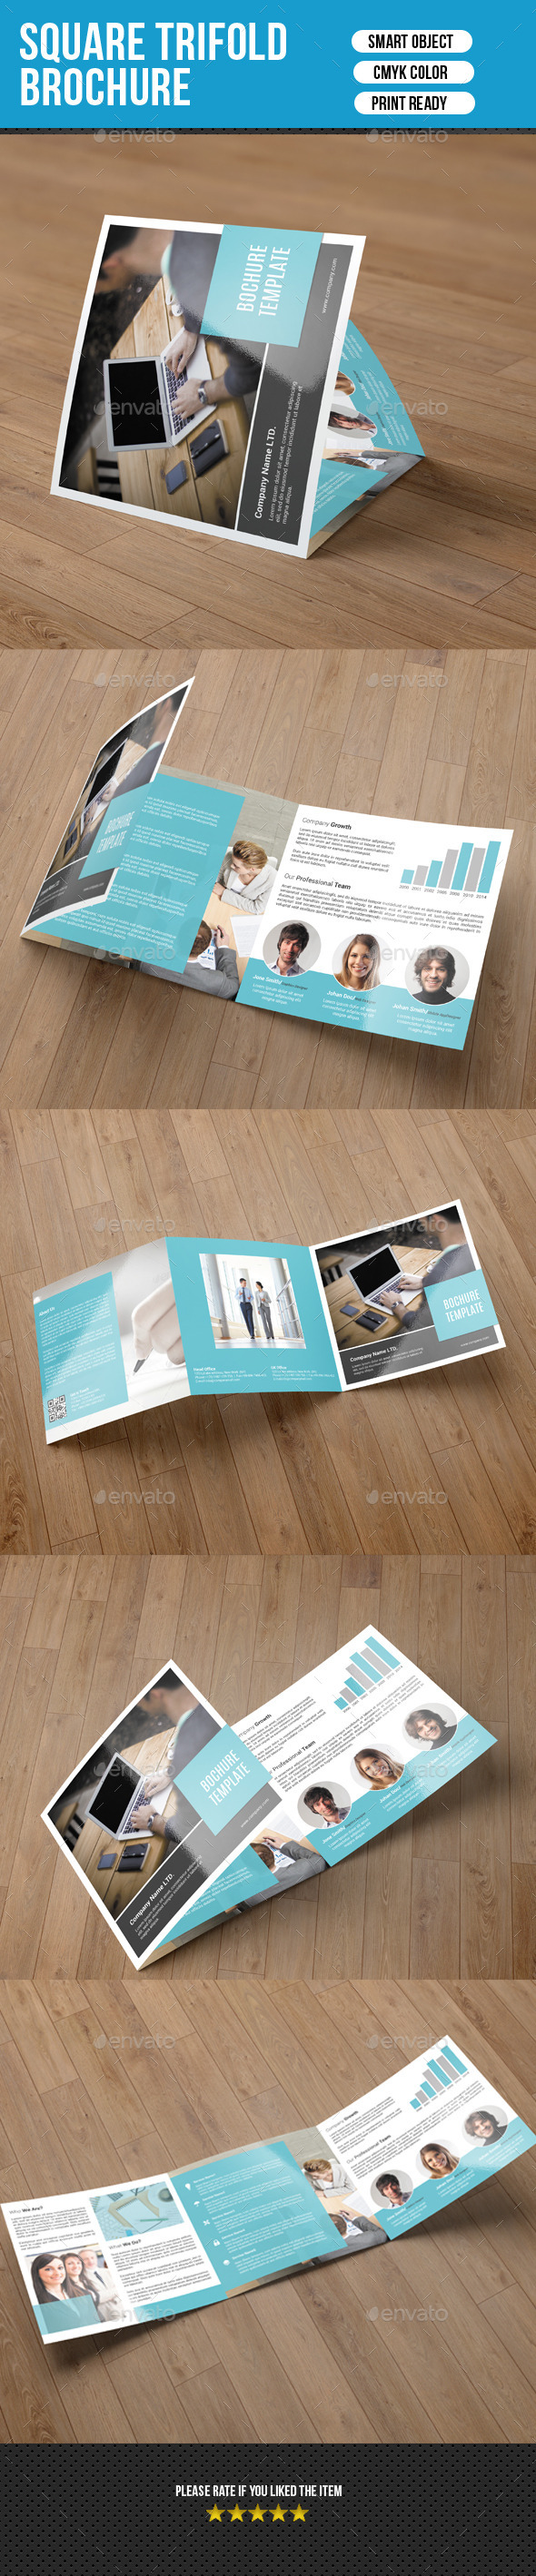 GraphicRiver Corporate Square Trifold Brochure-V55 9847398